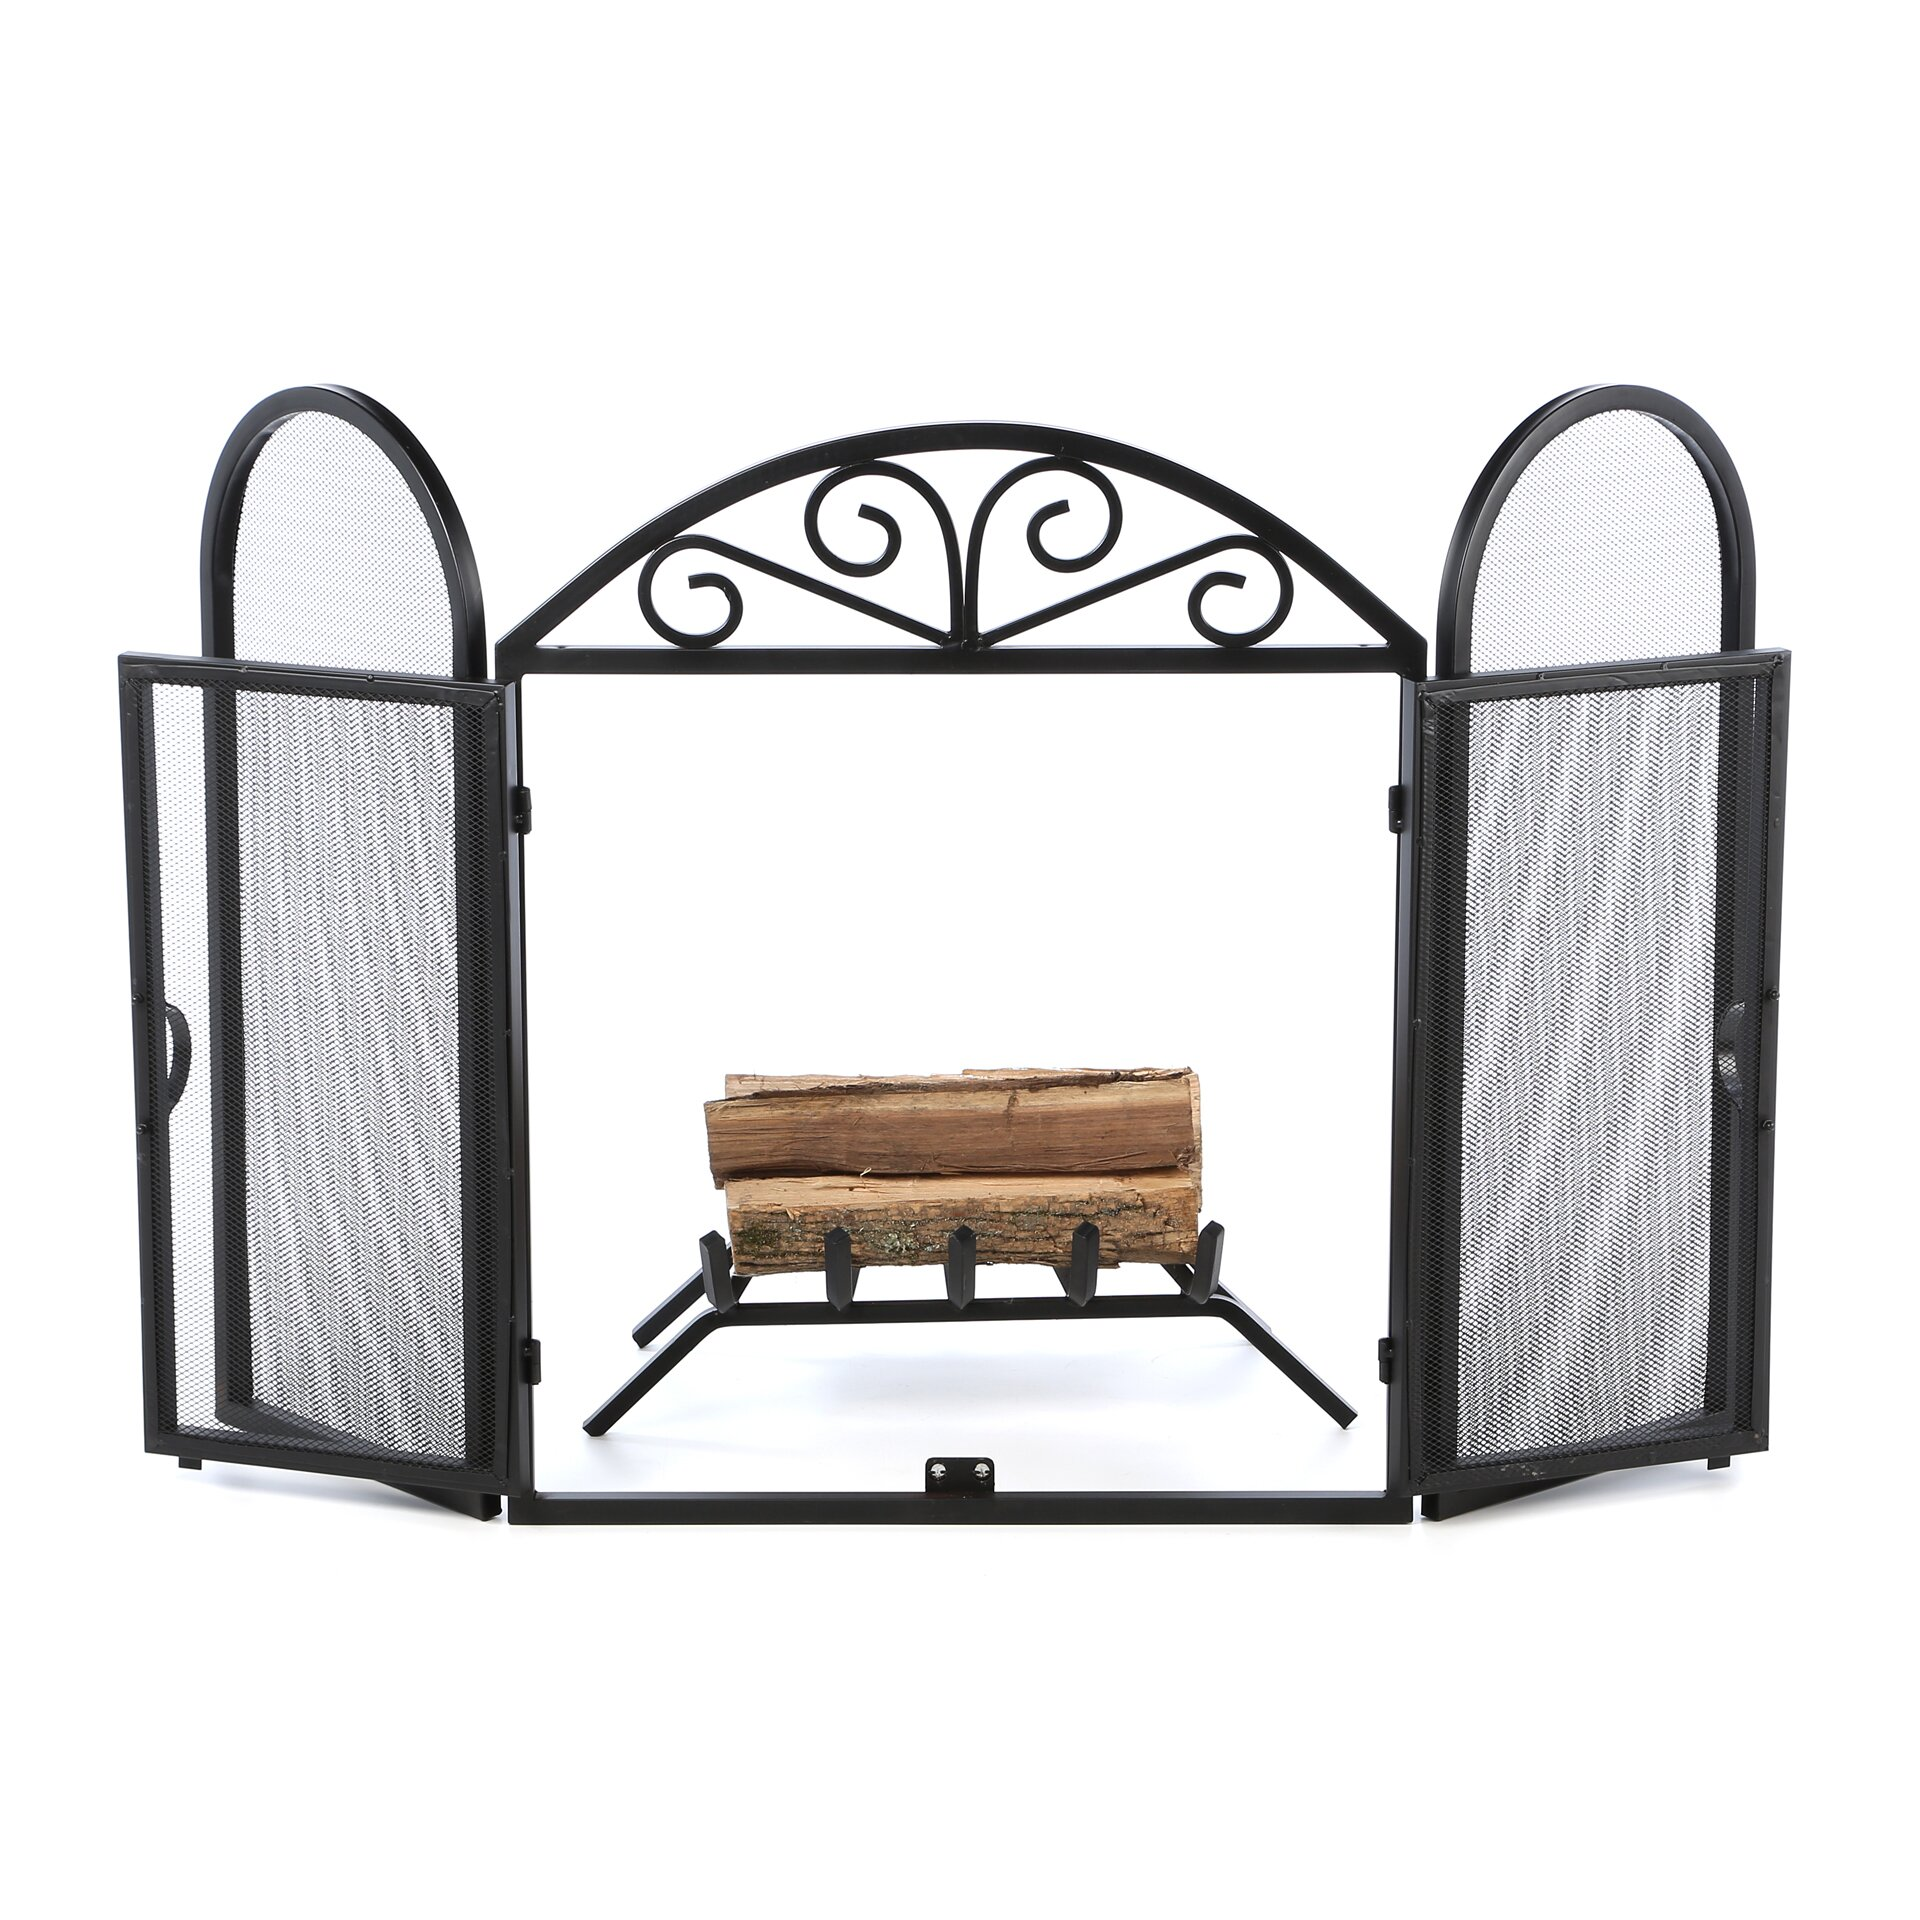 Uniflame 3 Panel Wrought Iron Fireplace Screen With Opening Doors Reviews Wayfair